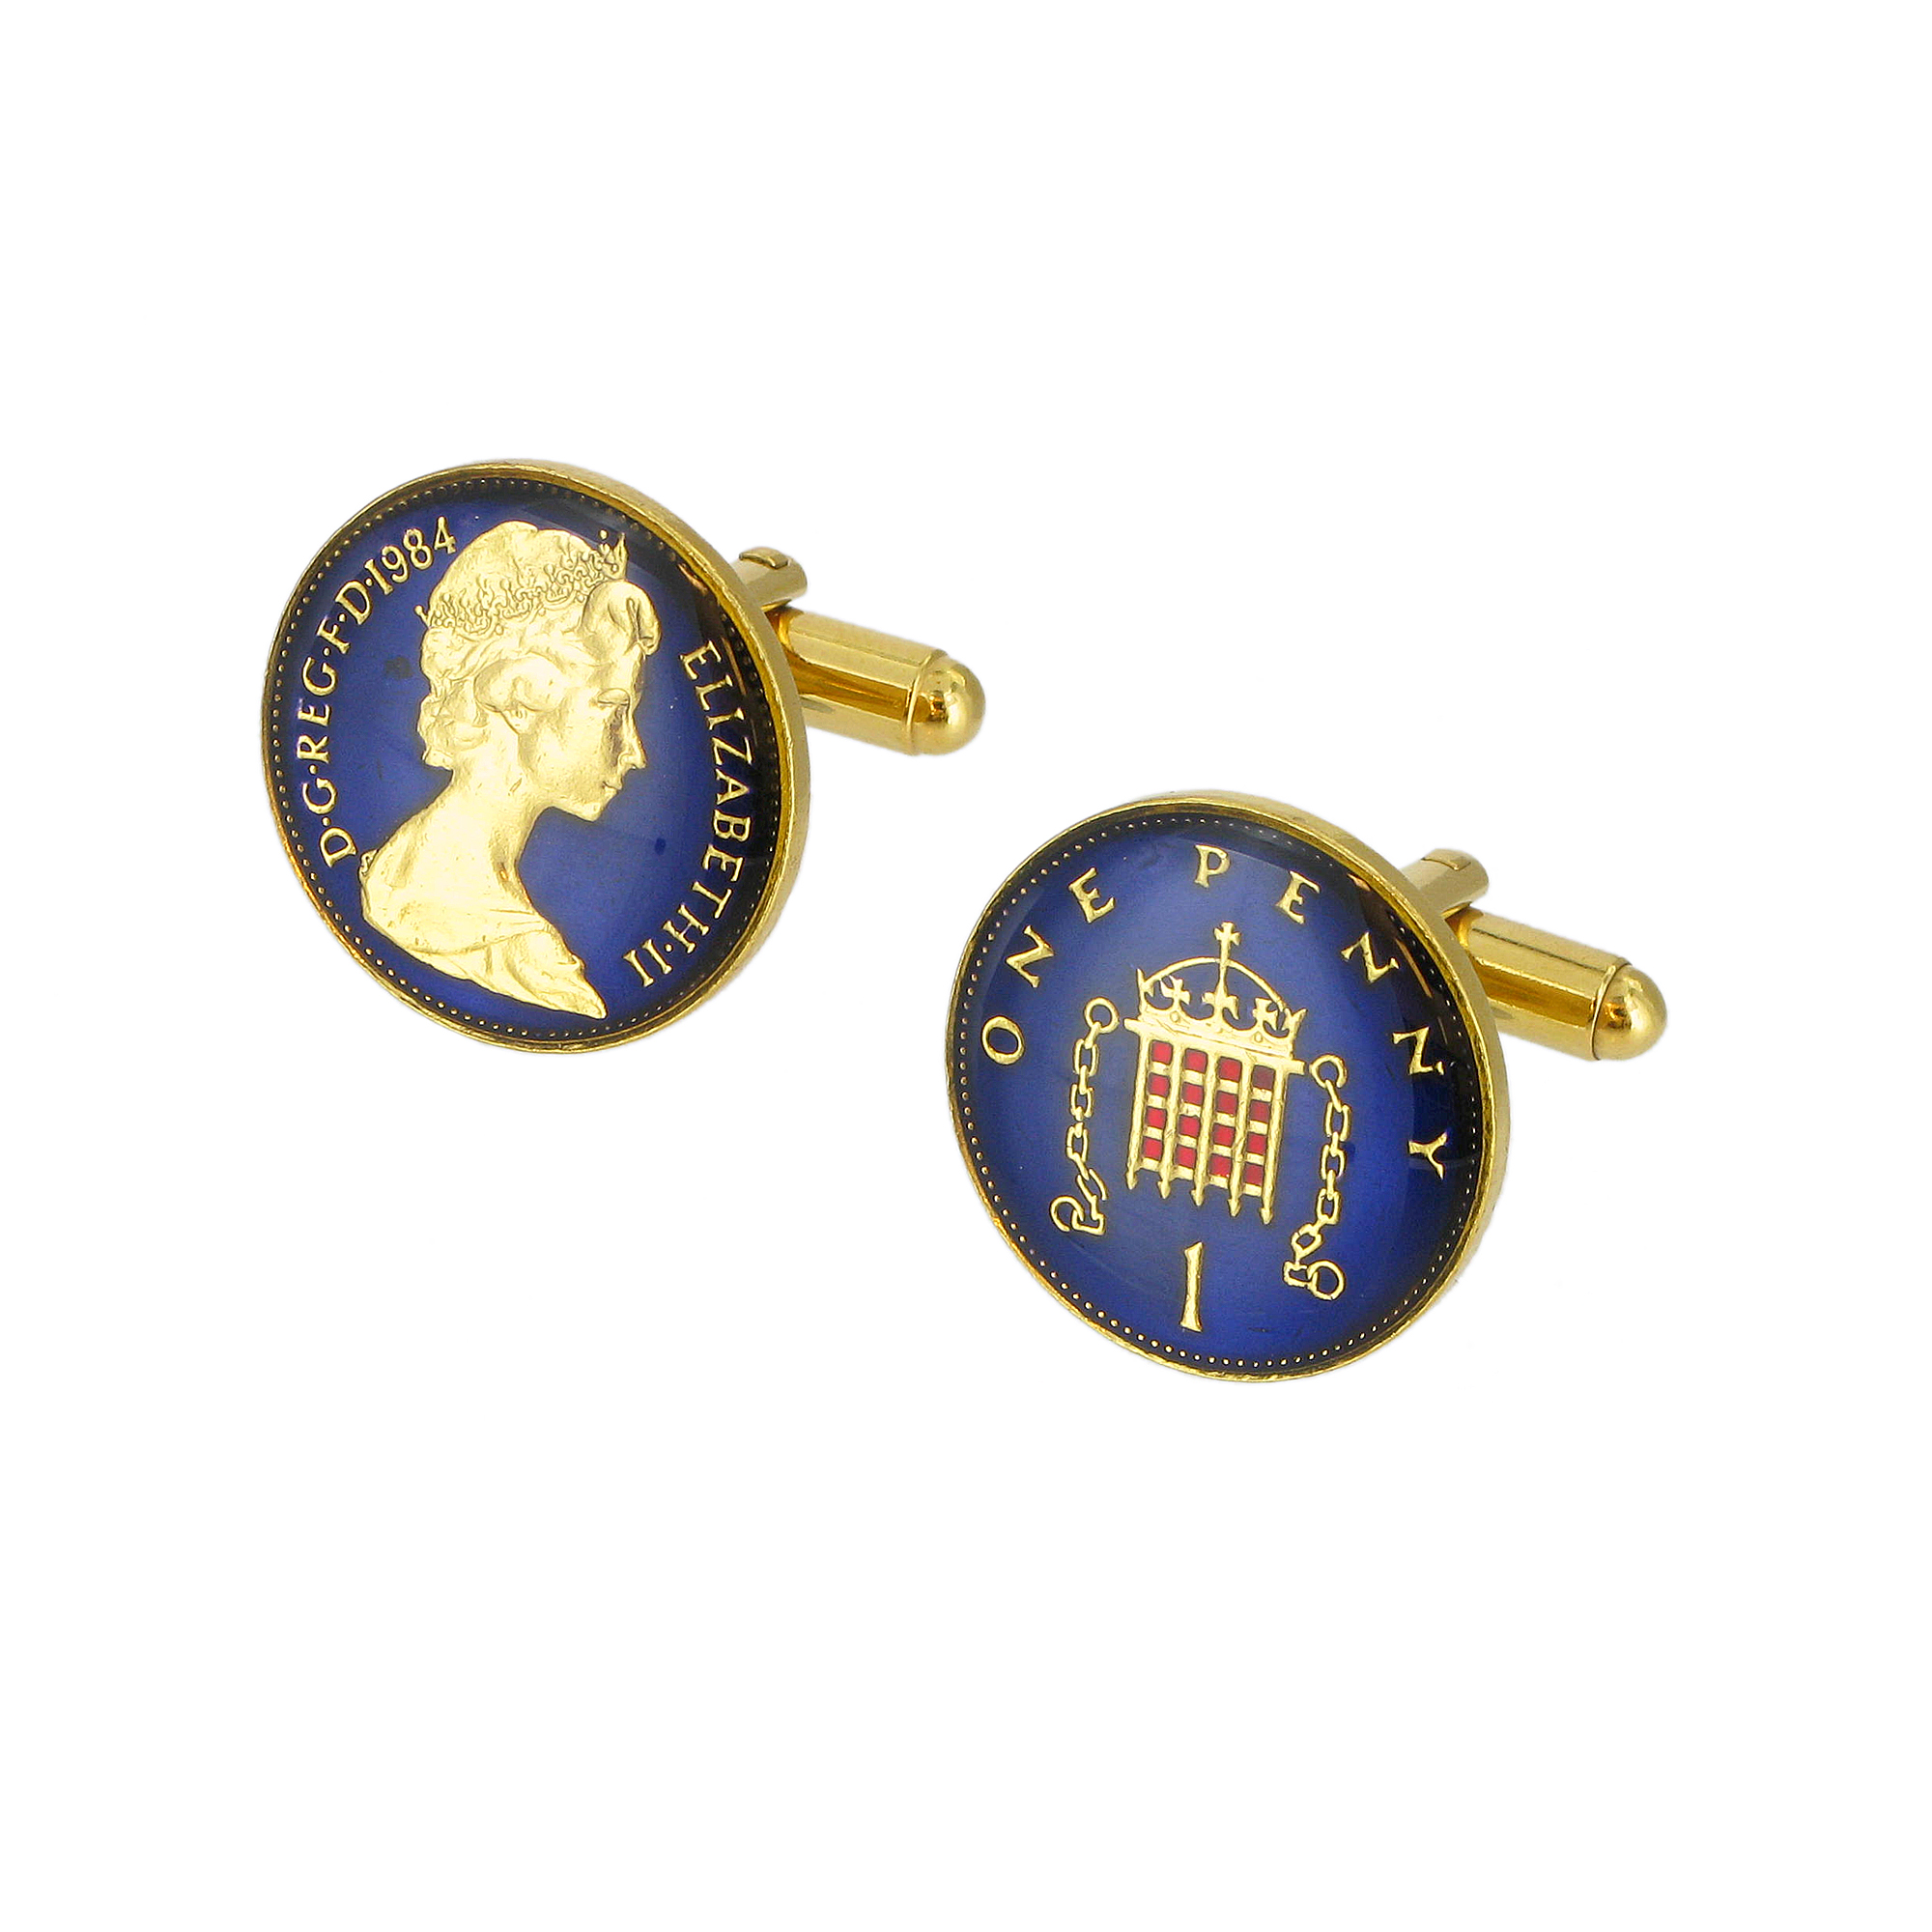 One Penny Cufflinks